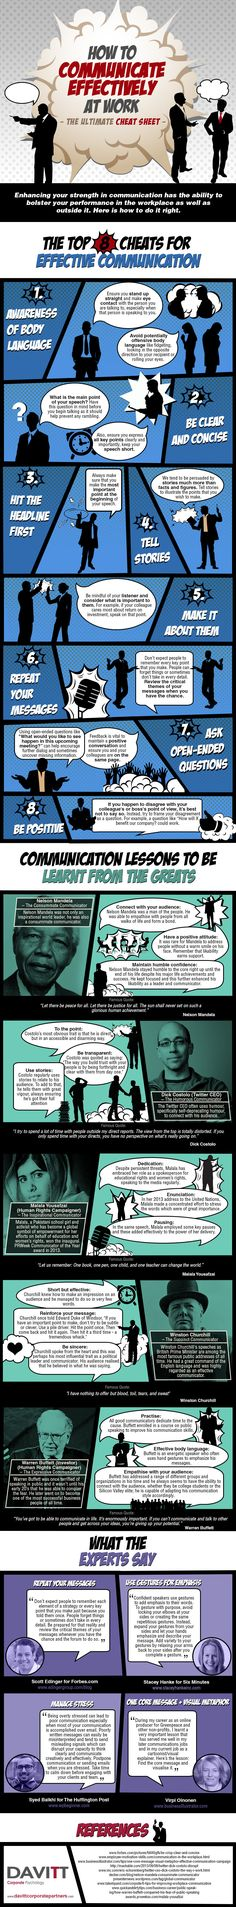 How To Communicate Effectively At Work The Ultimate Cheat Sheet Infographic Communication Business Marketing Mail, Marketing Digital, It Management, Business Management, Project Management, Effective Communication, Communication Skills, Career Development, Professional Development